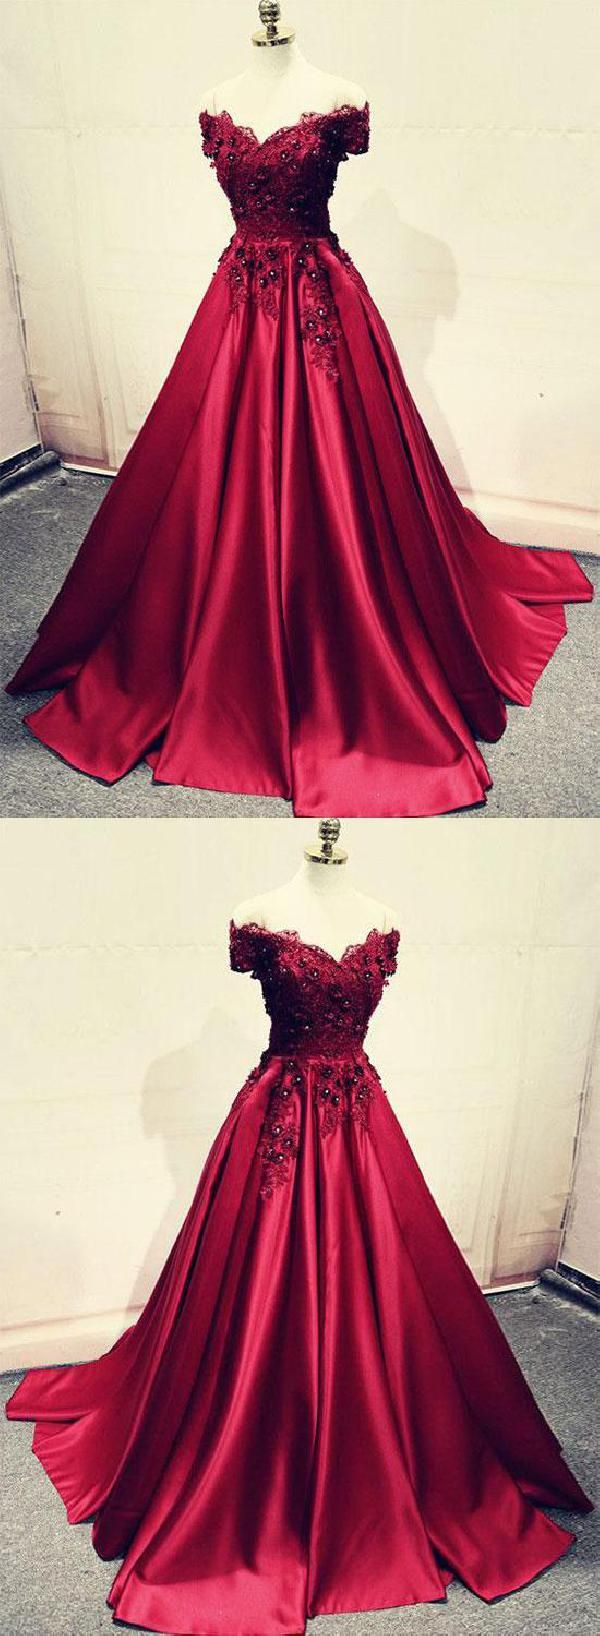 Comely long prom dress lace bridesmaid dresses burgundy prom dress